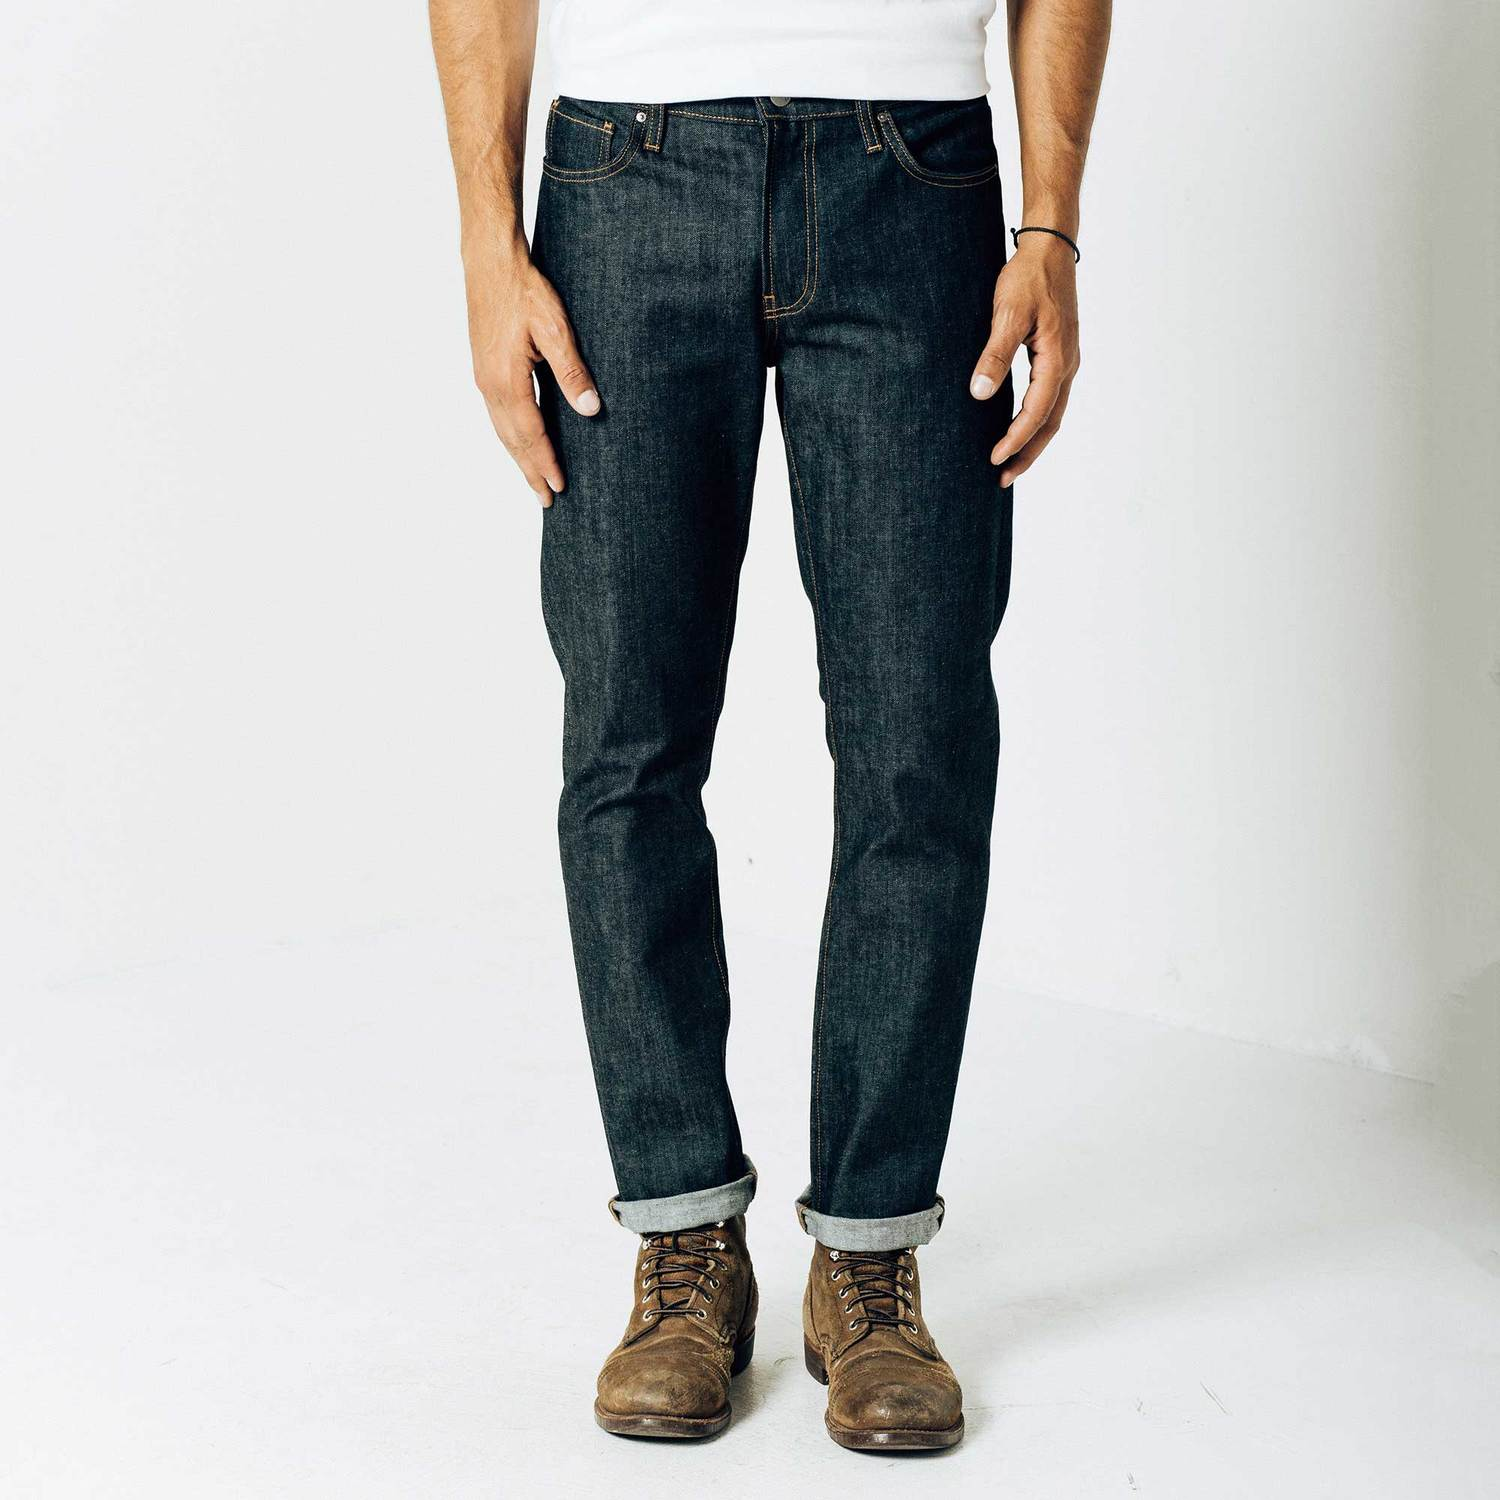 Mens Skinny Slim 12.75oz Raw Denim Jeans In 24 Dip Indigo Timber $75 | DSTLD